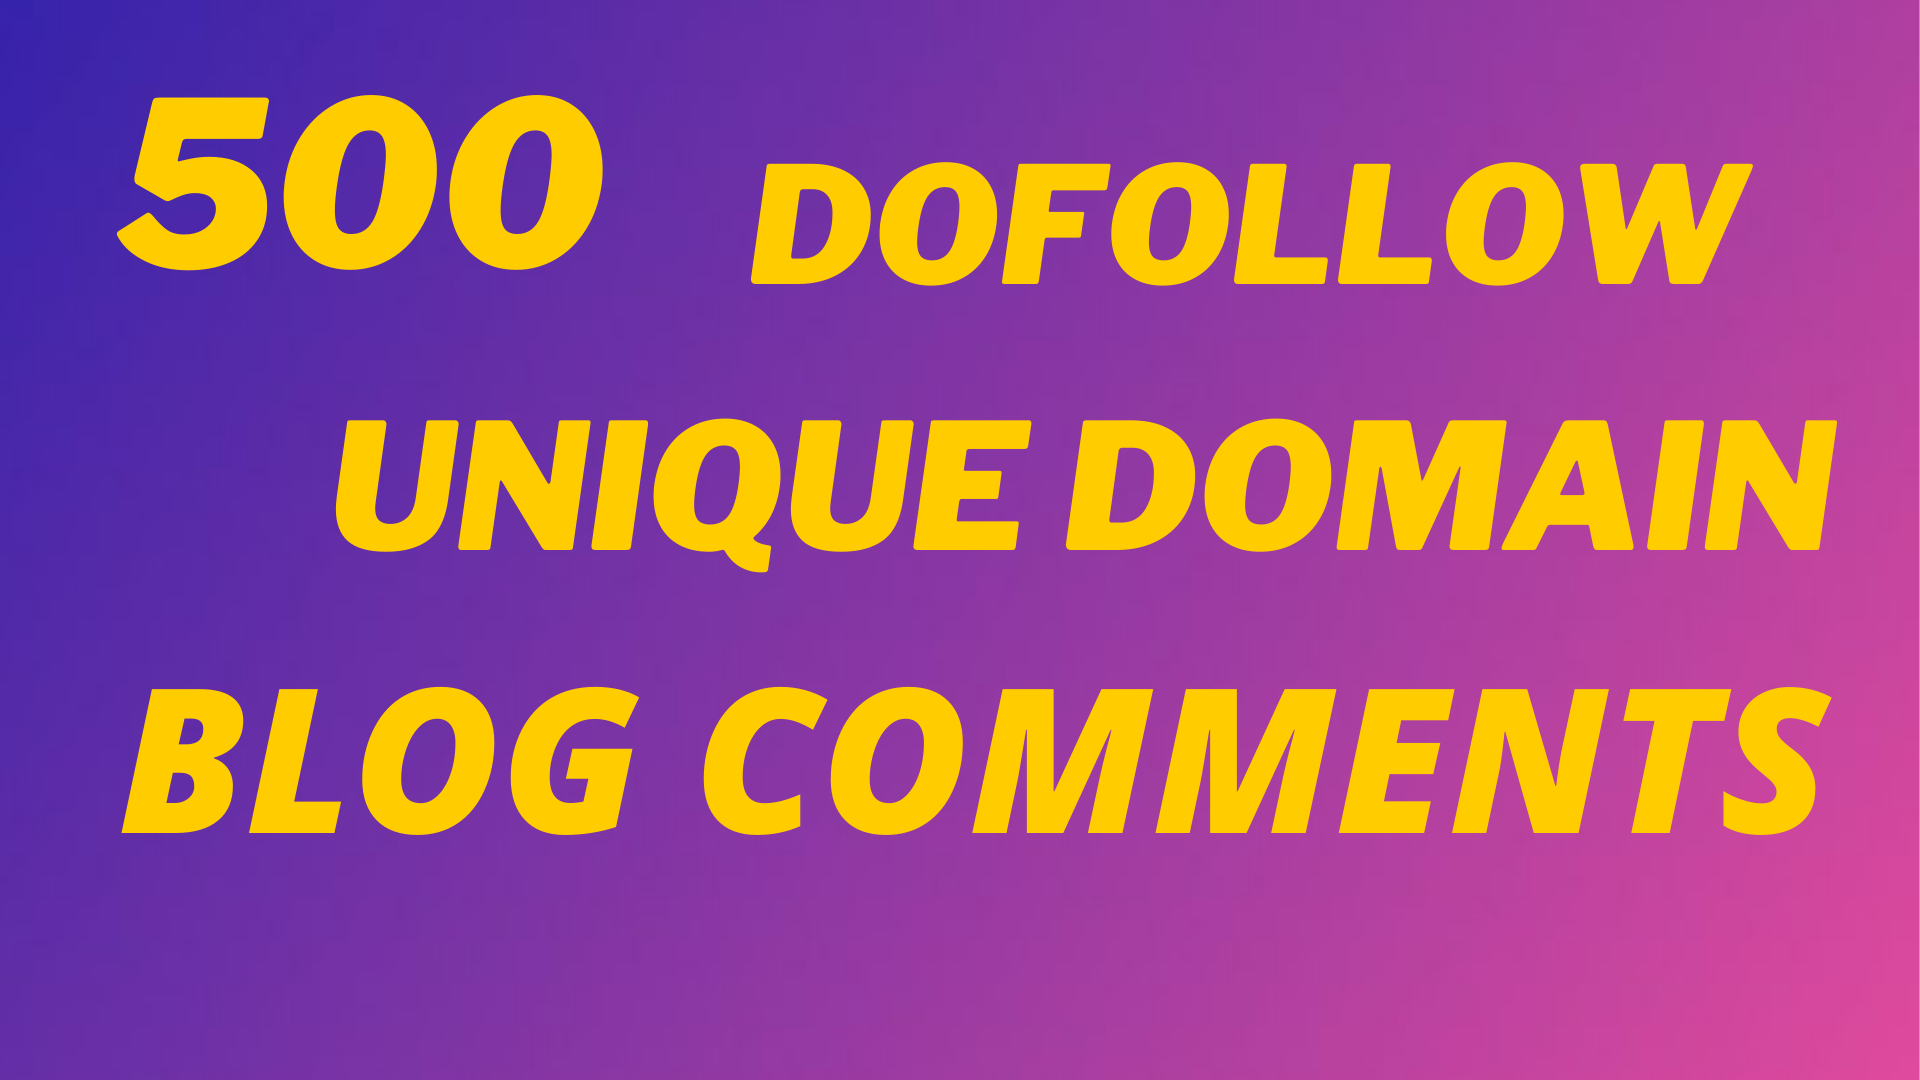 I Will Do 500 Dofollow Unique Domains Blog Comments In Less Time